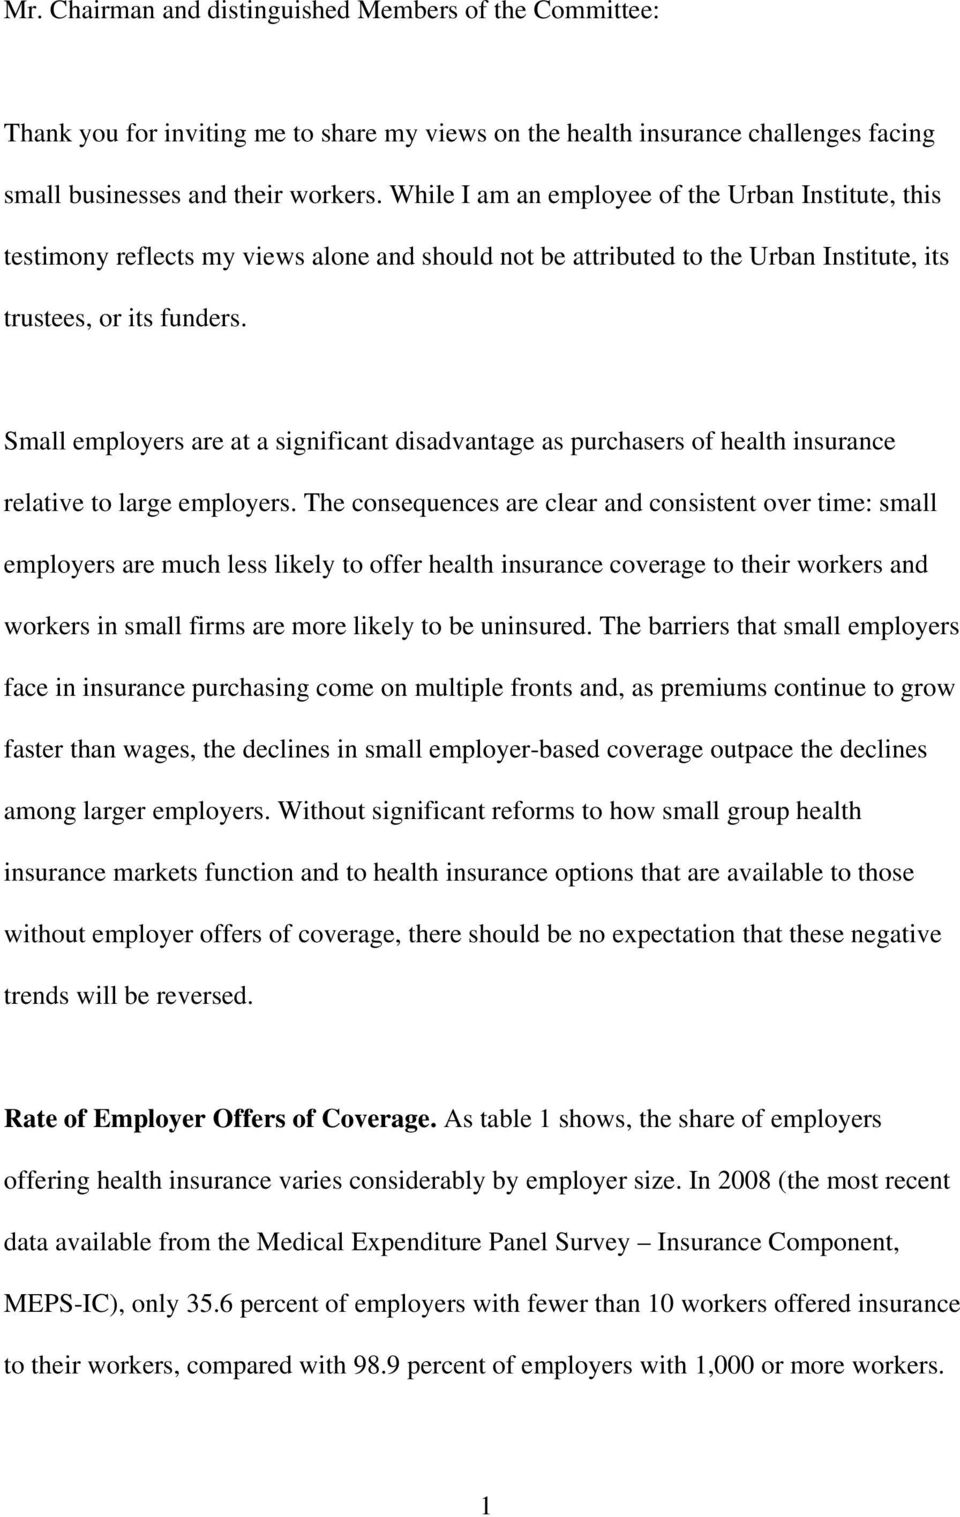 Small employers are at a significant disadvantage as purchasers of health insurance relative to large employers.